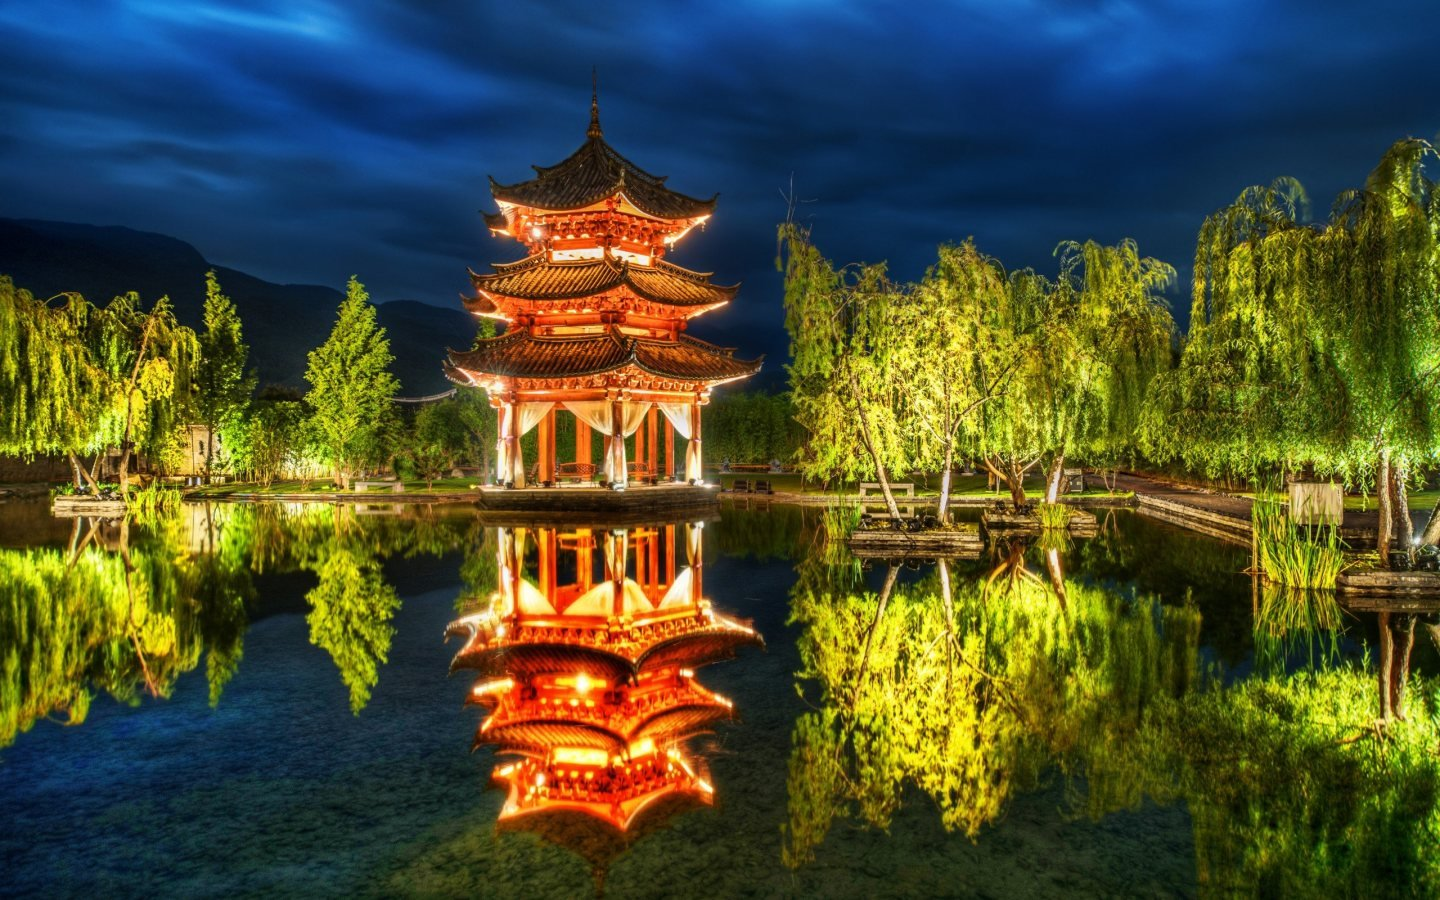 Lijiang City Of China HD Wallpaper Slwallpapers 1440x900